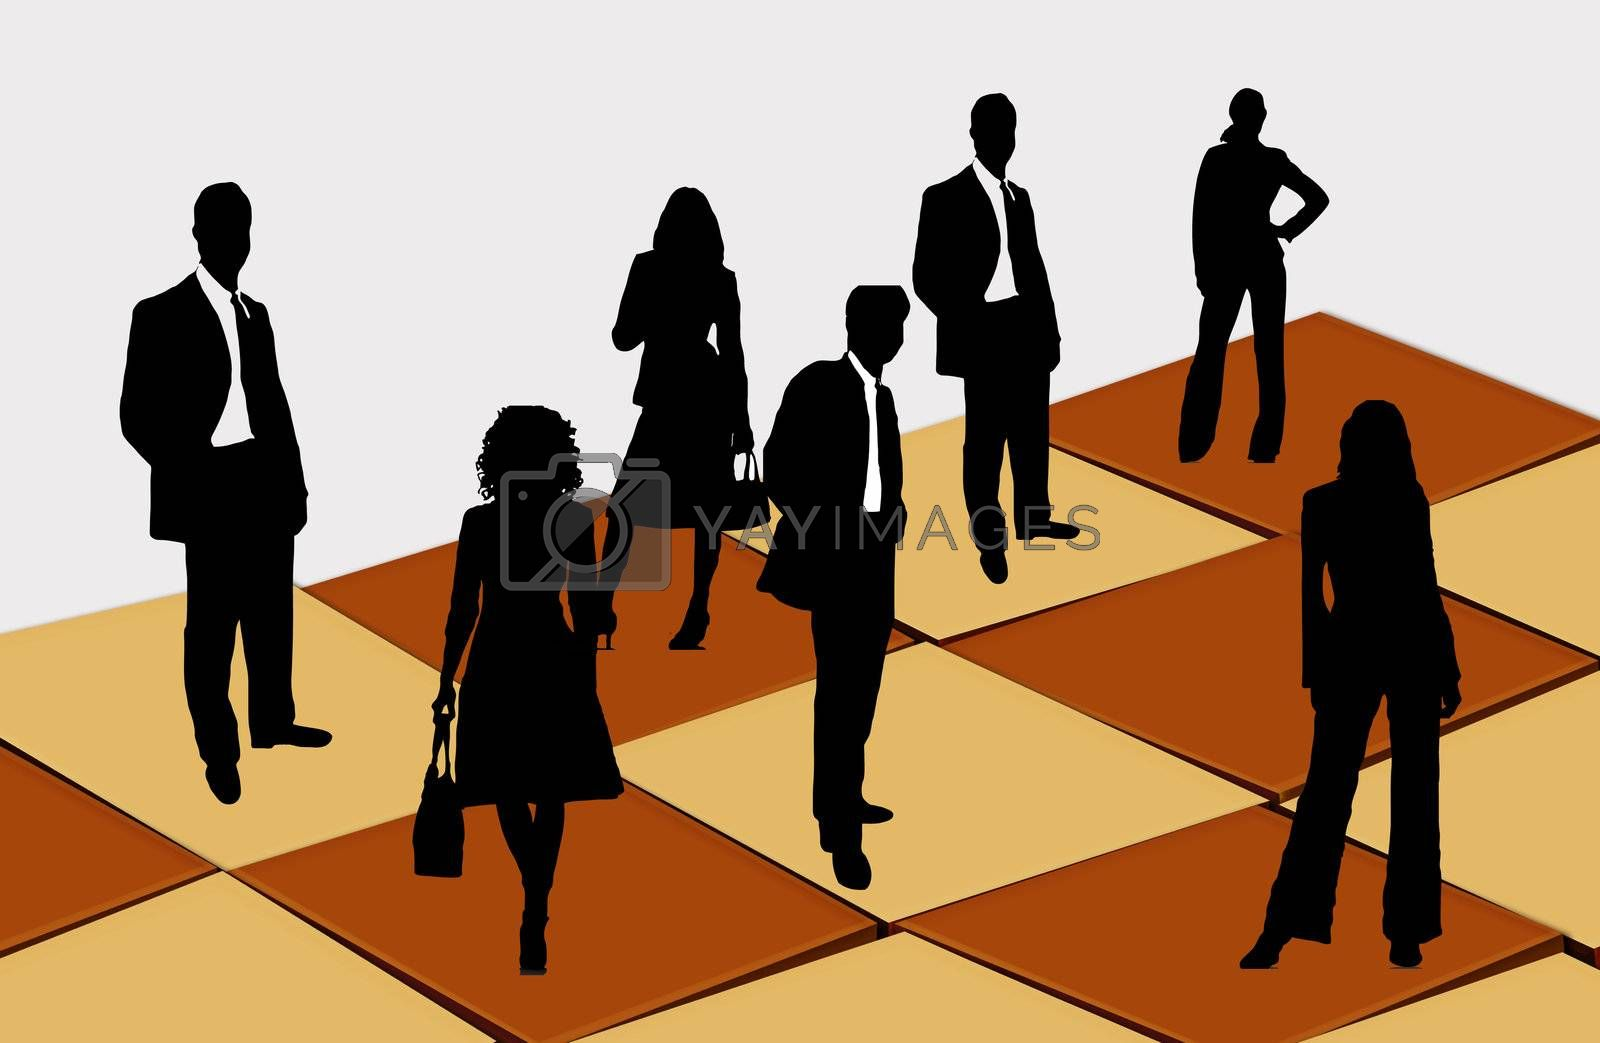 Here are businessmen and businesswomen on the chess